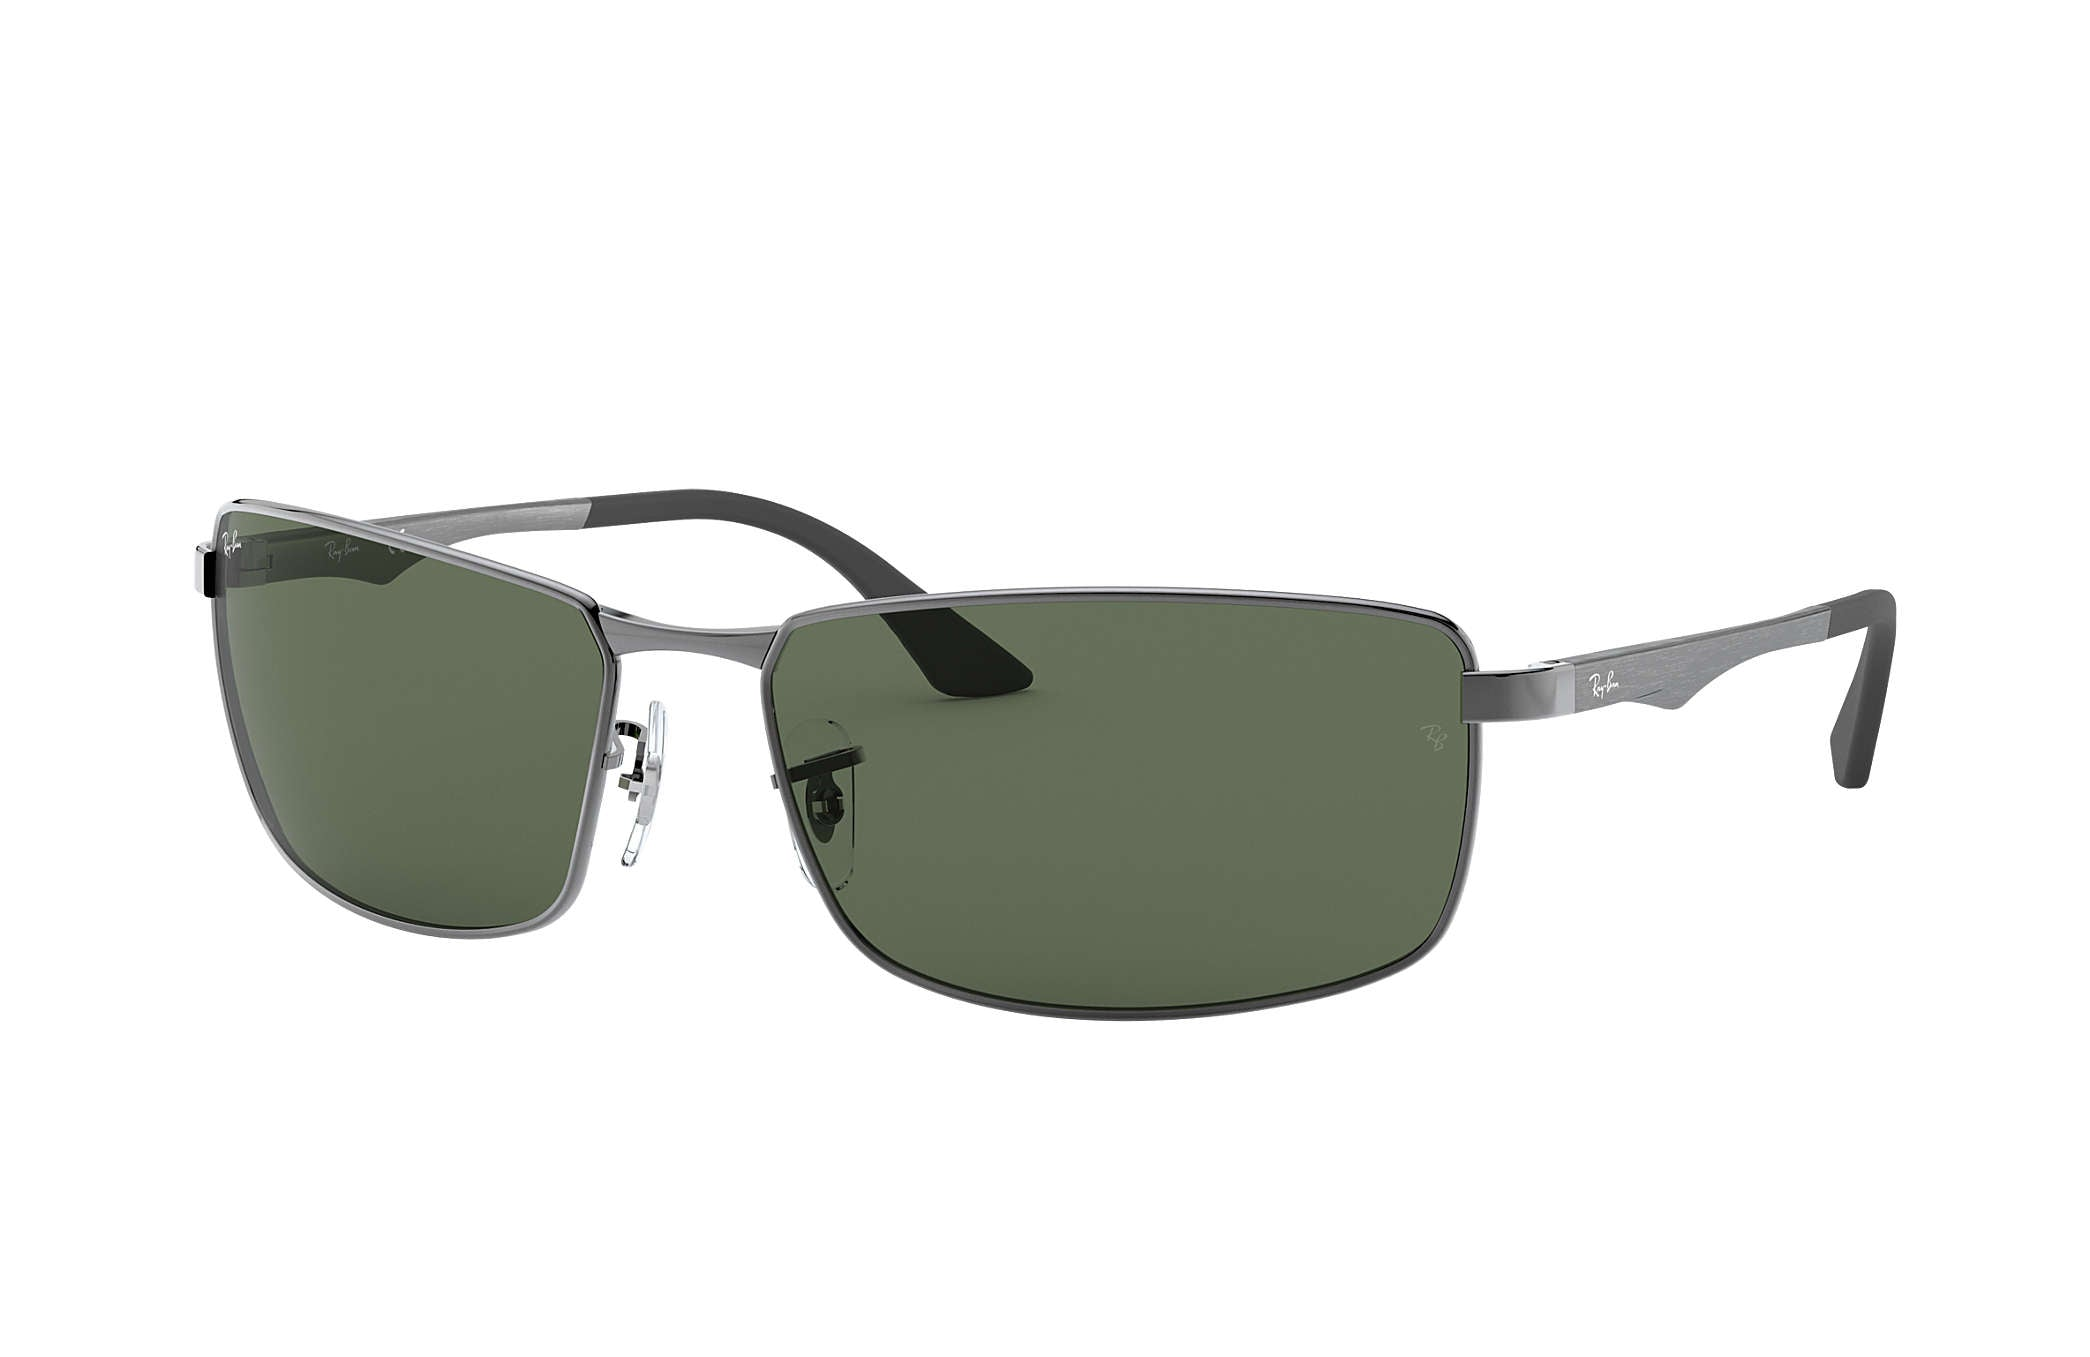 RAY-BAN 0RB3498 SUNGLASSES - OPTICIWEAR.COM